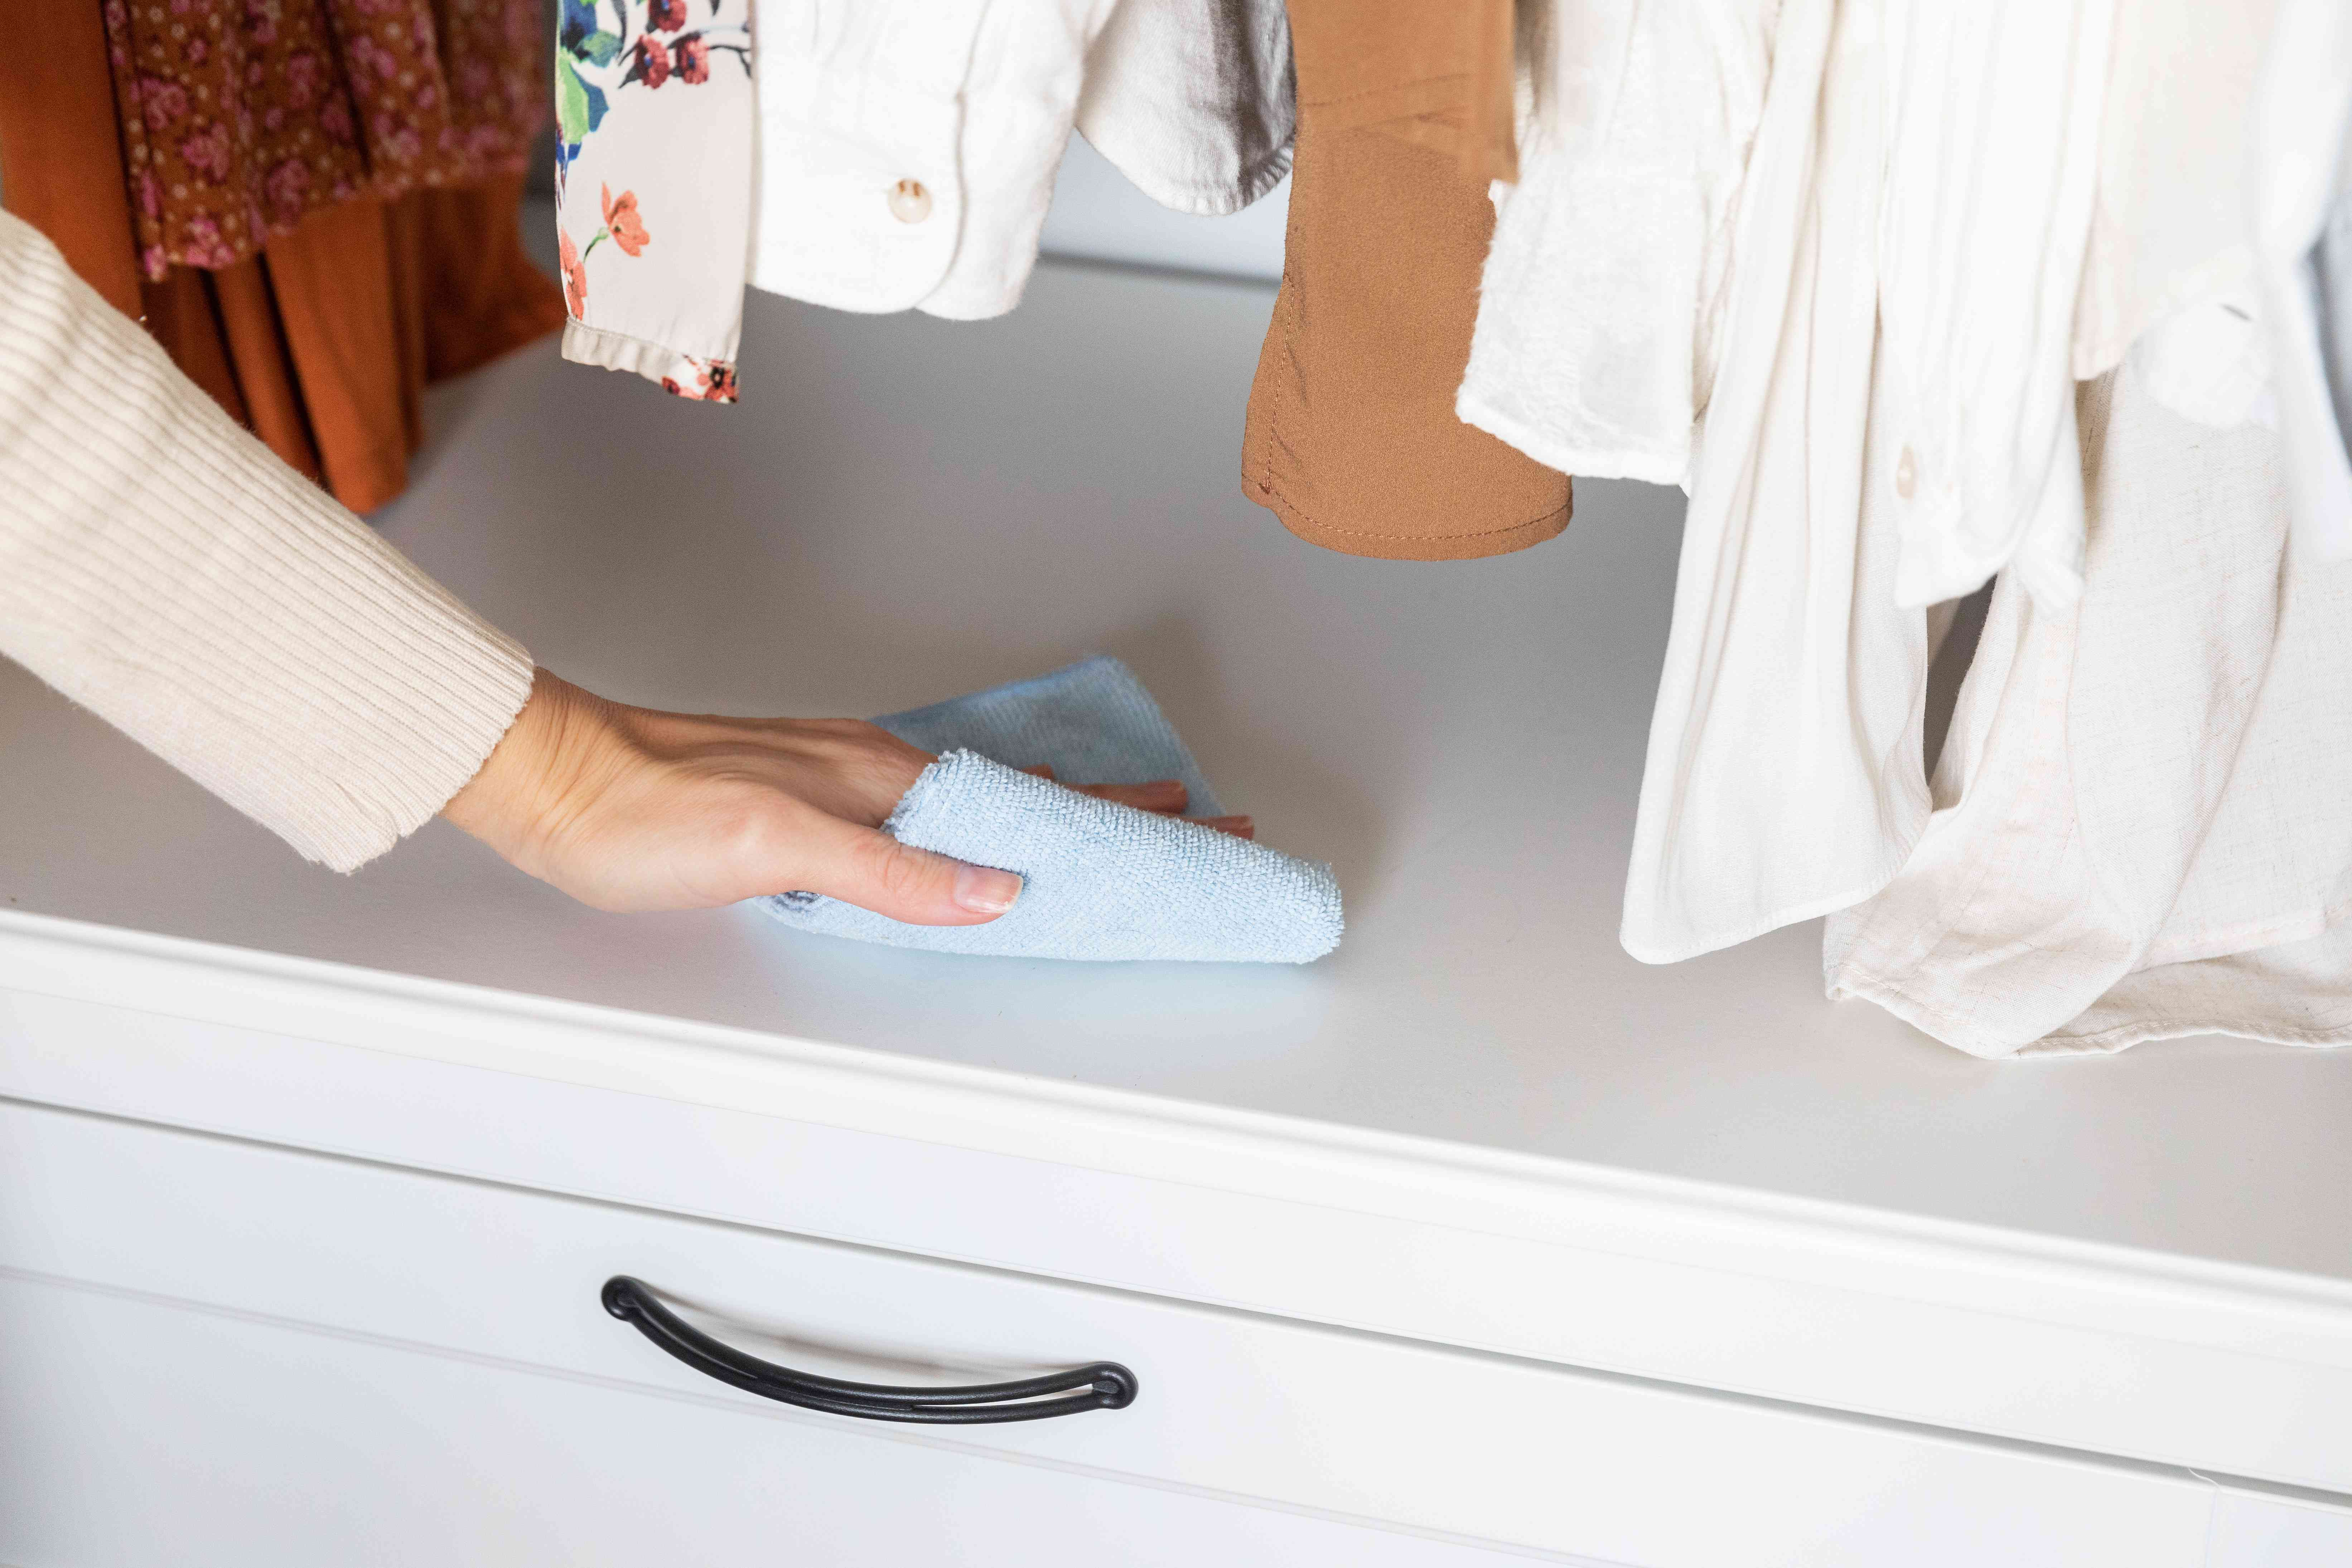 Wiping down closet cabinet with cloth to prevent insects eating clothes